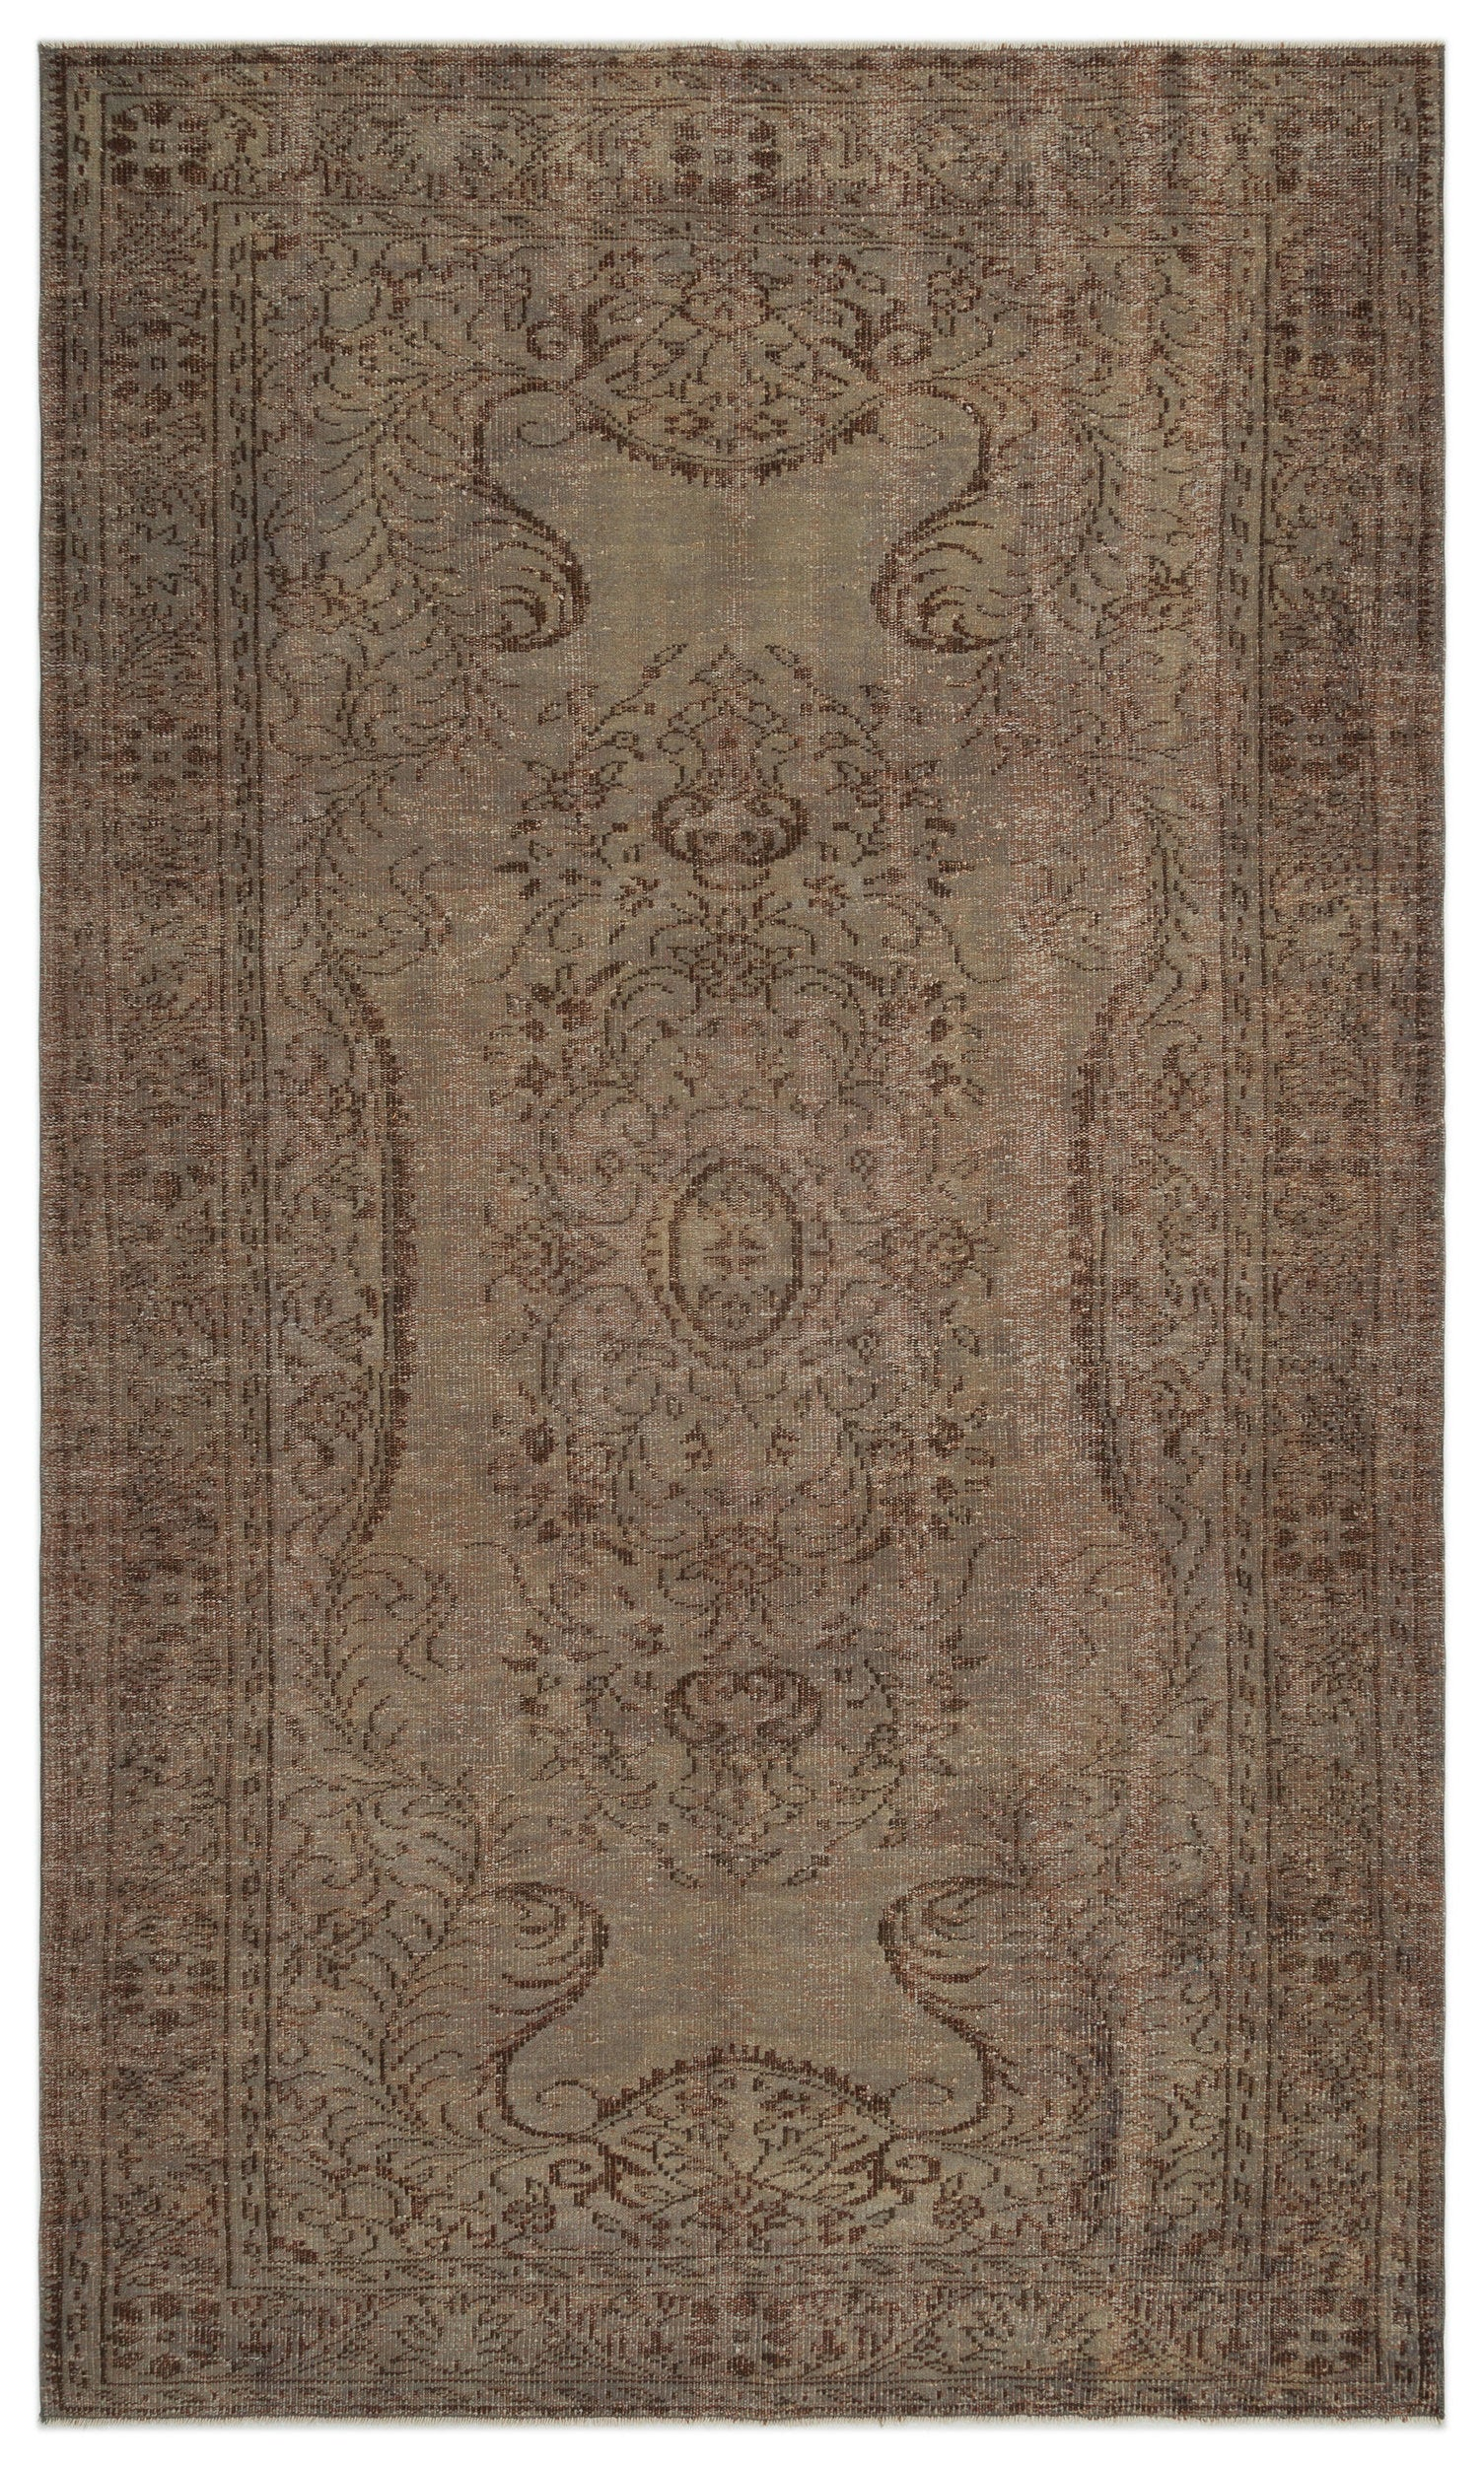 Brown Over Dyed Vintage Rug 5'11'' x 10'1'' ft 181 x 308 cm